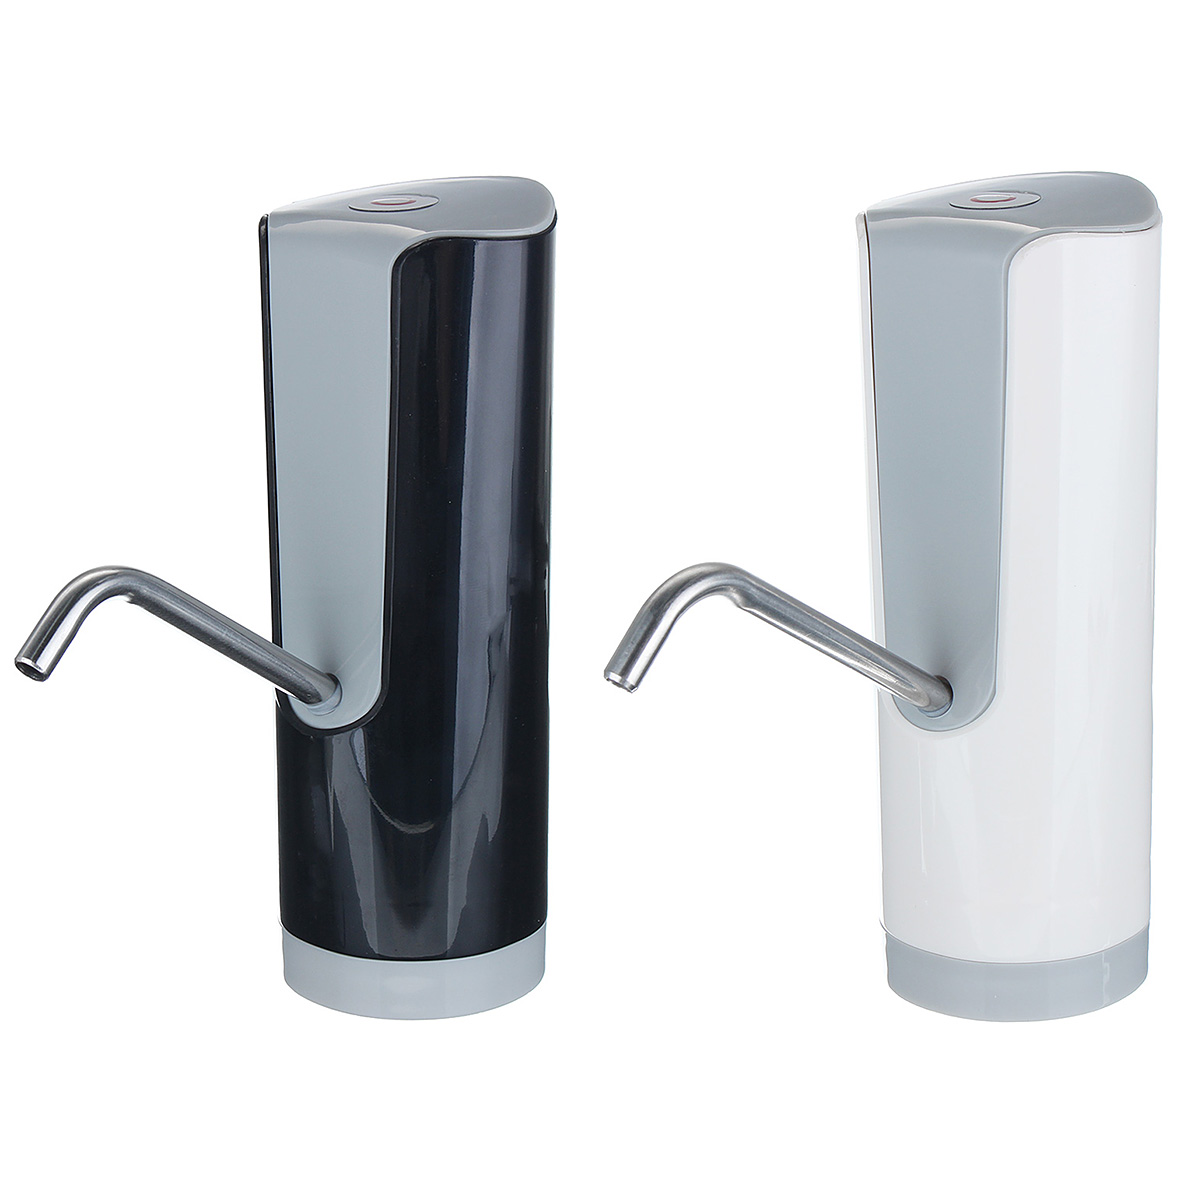 Wireless Automatic Electric Water Pump Dispenser Gallon Bottle Drinking Switch New Design